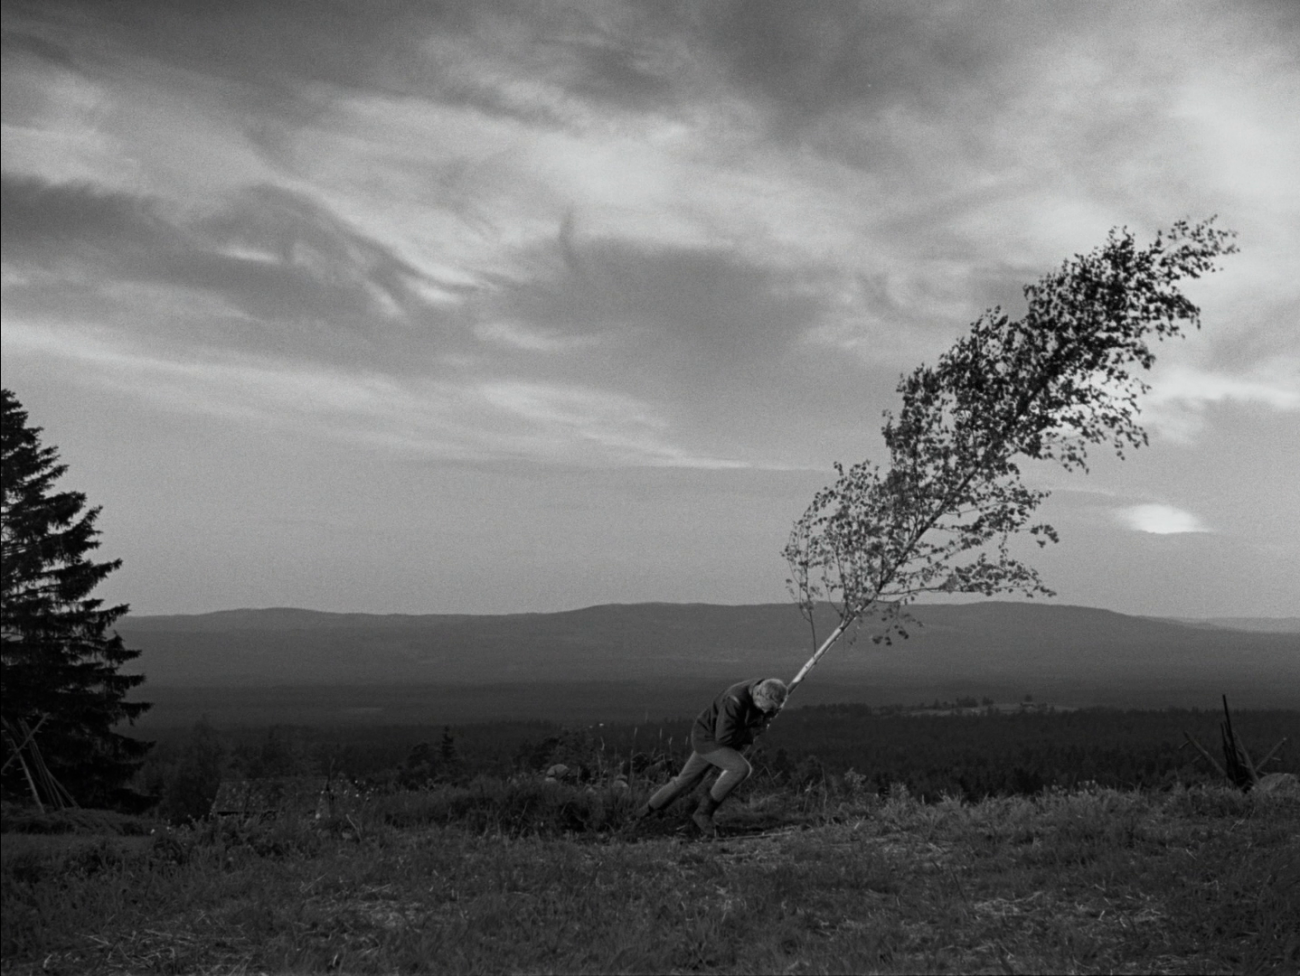 Max Von Sydow pulling down a birch tree in The Virgin Spring